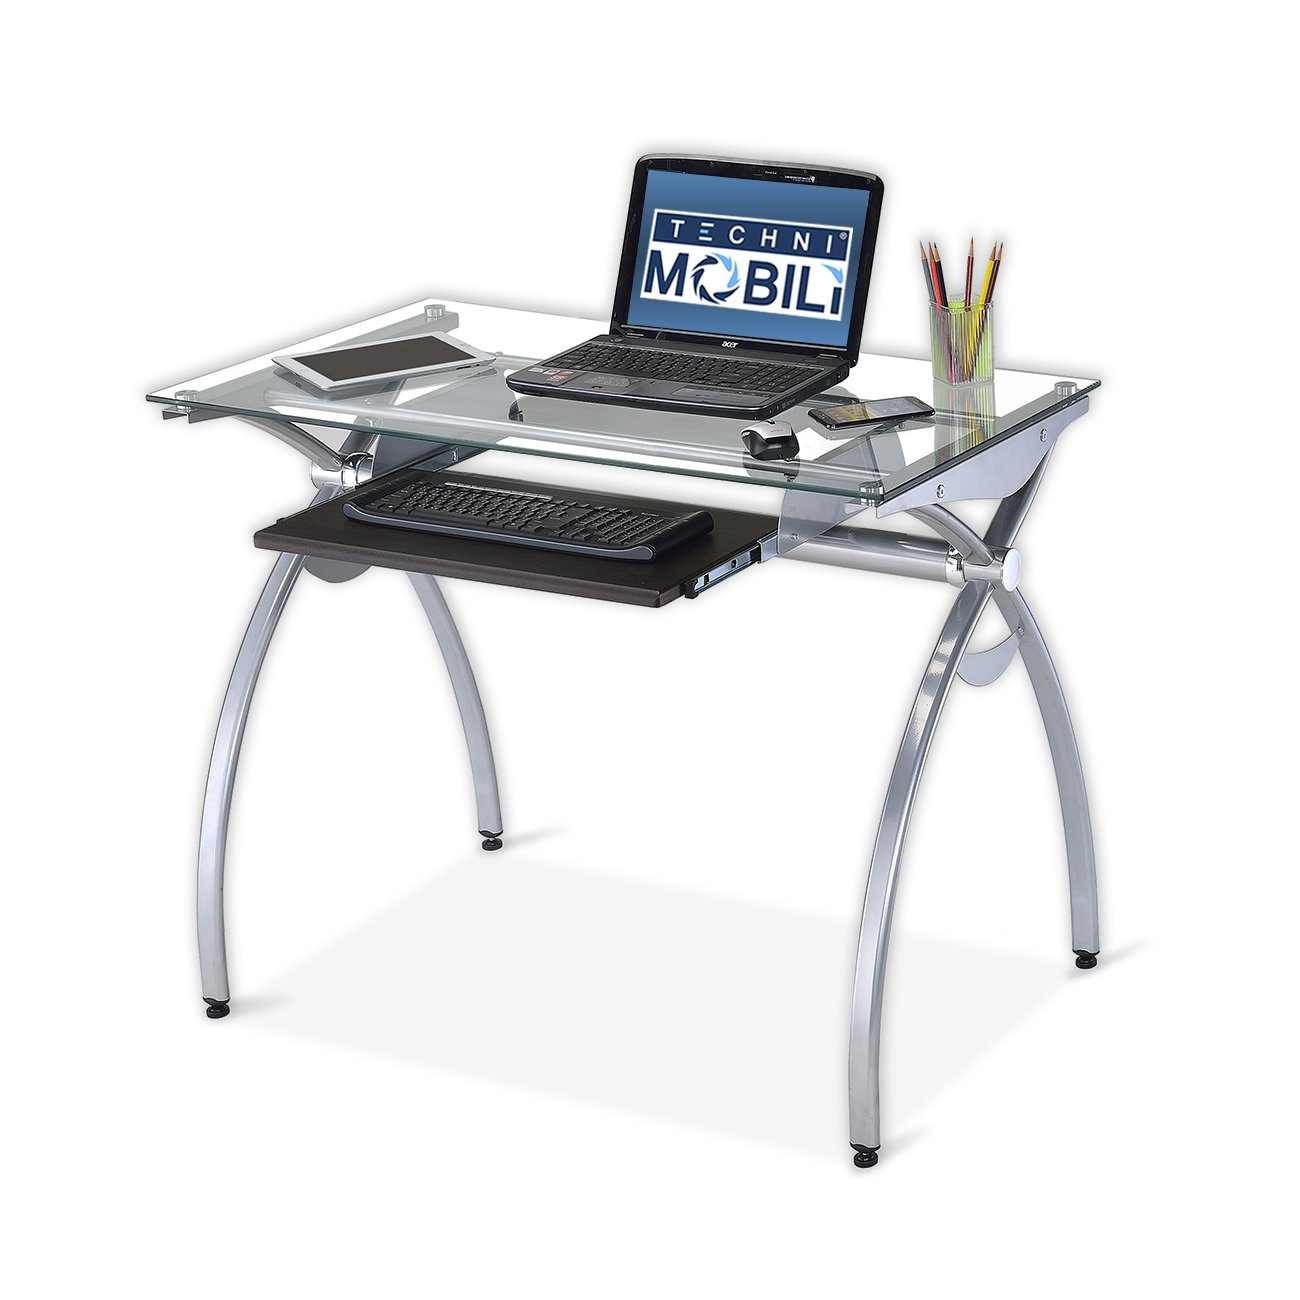 This computer desk for gaming offers a good amount of space and the price is very reasonable as well.